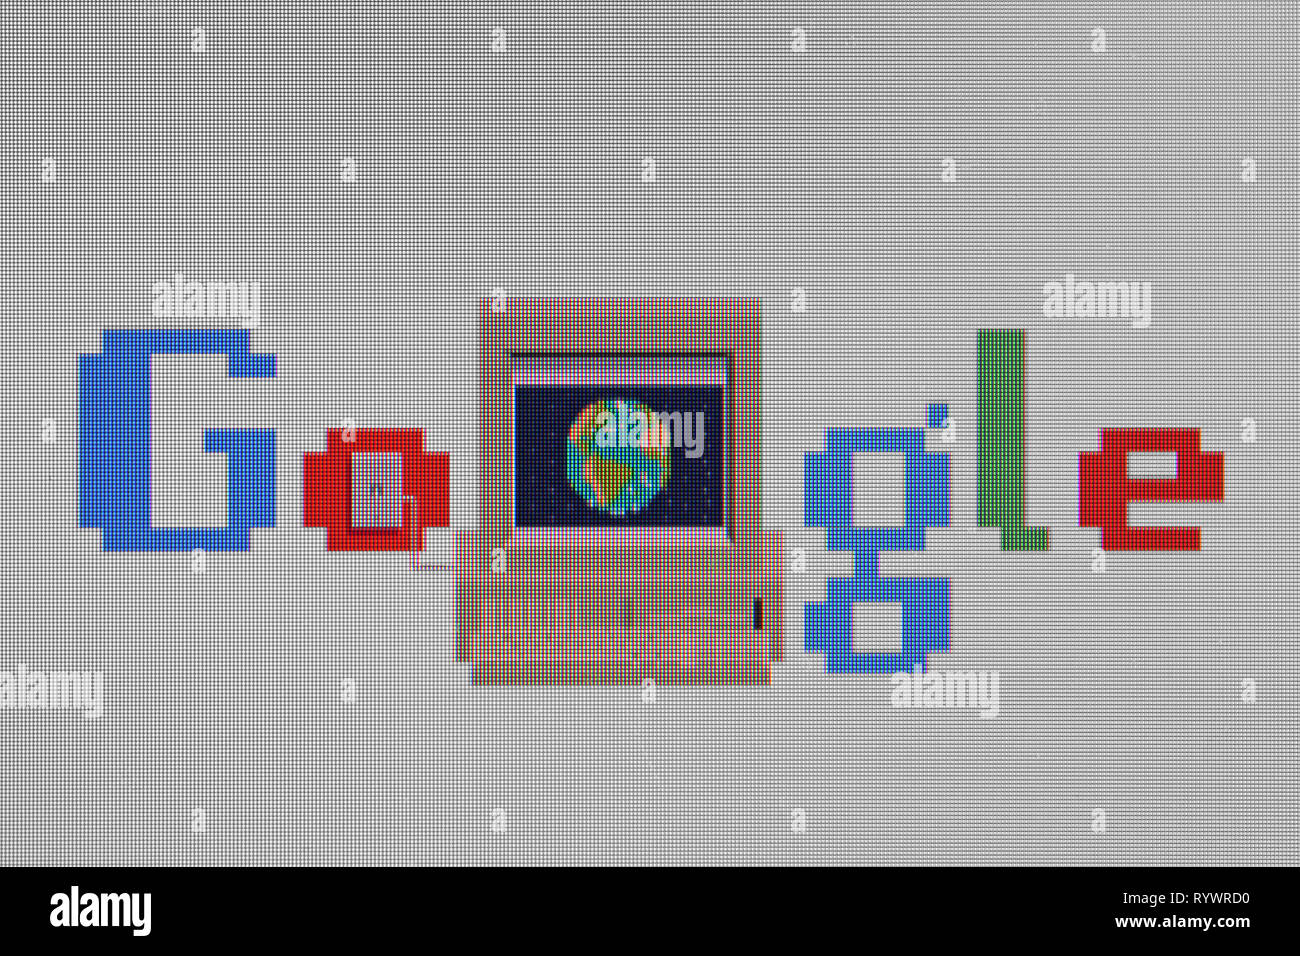 Special google logo tribute to Internet, World Wide Web anniversary - Stock Image